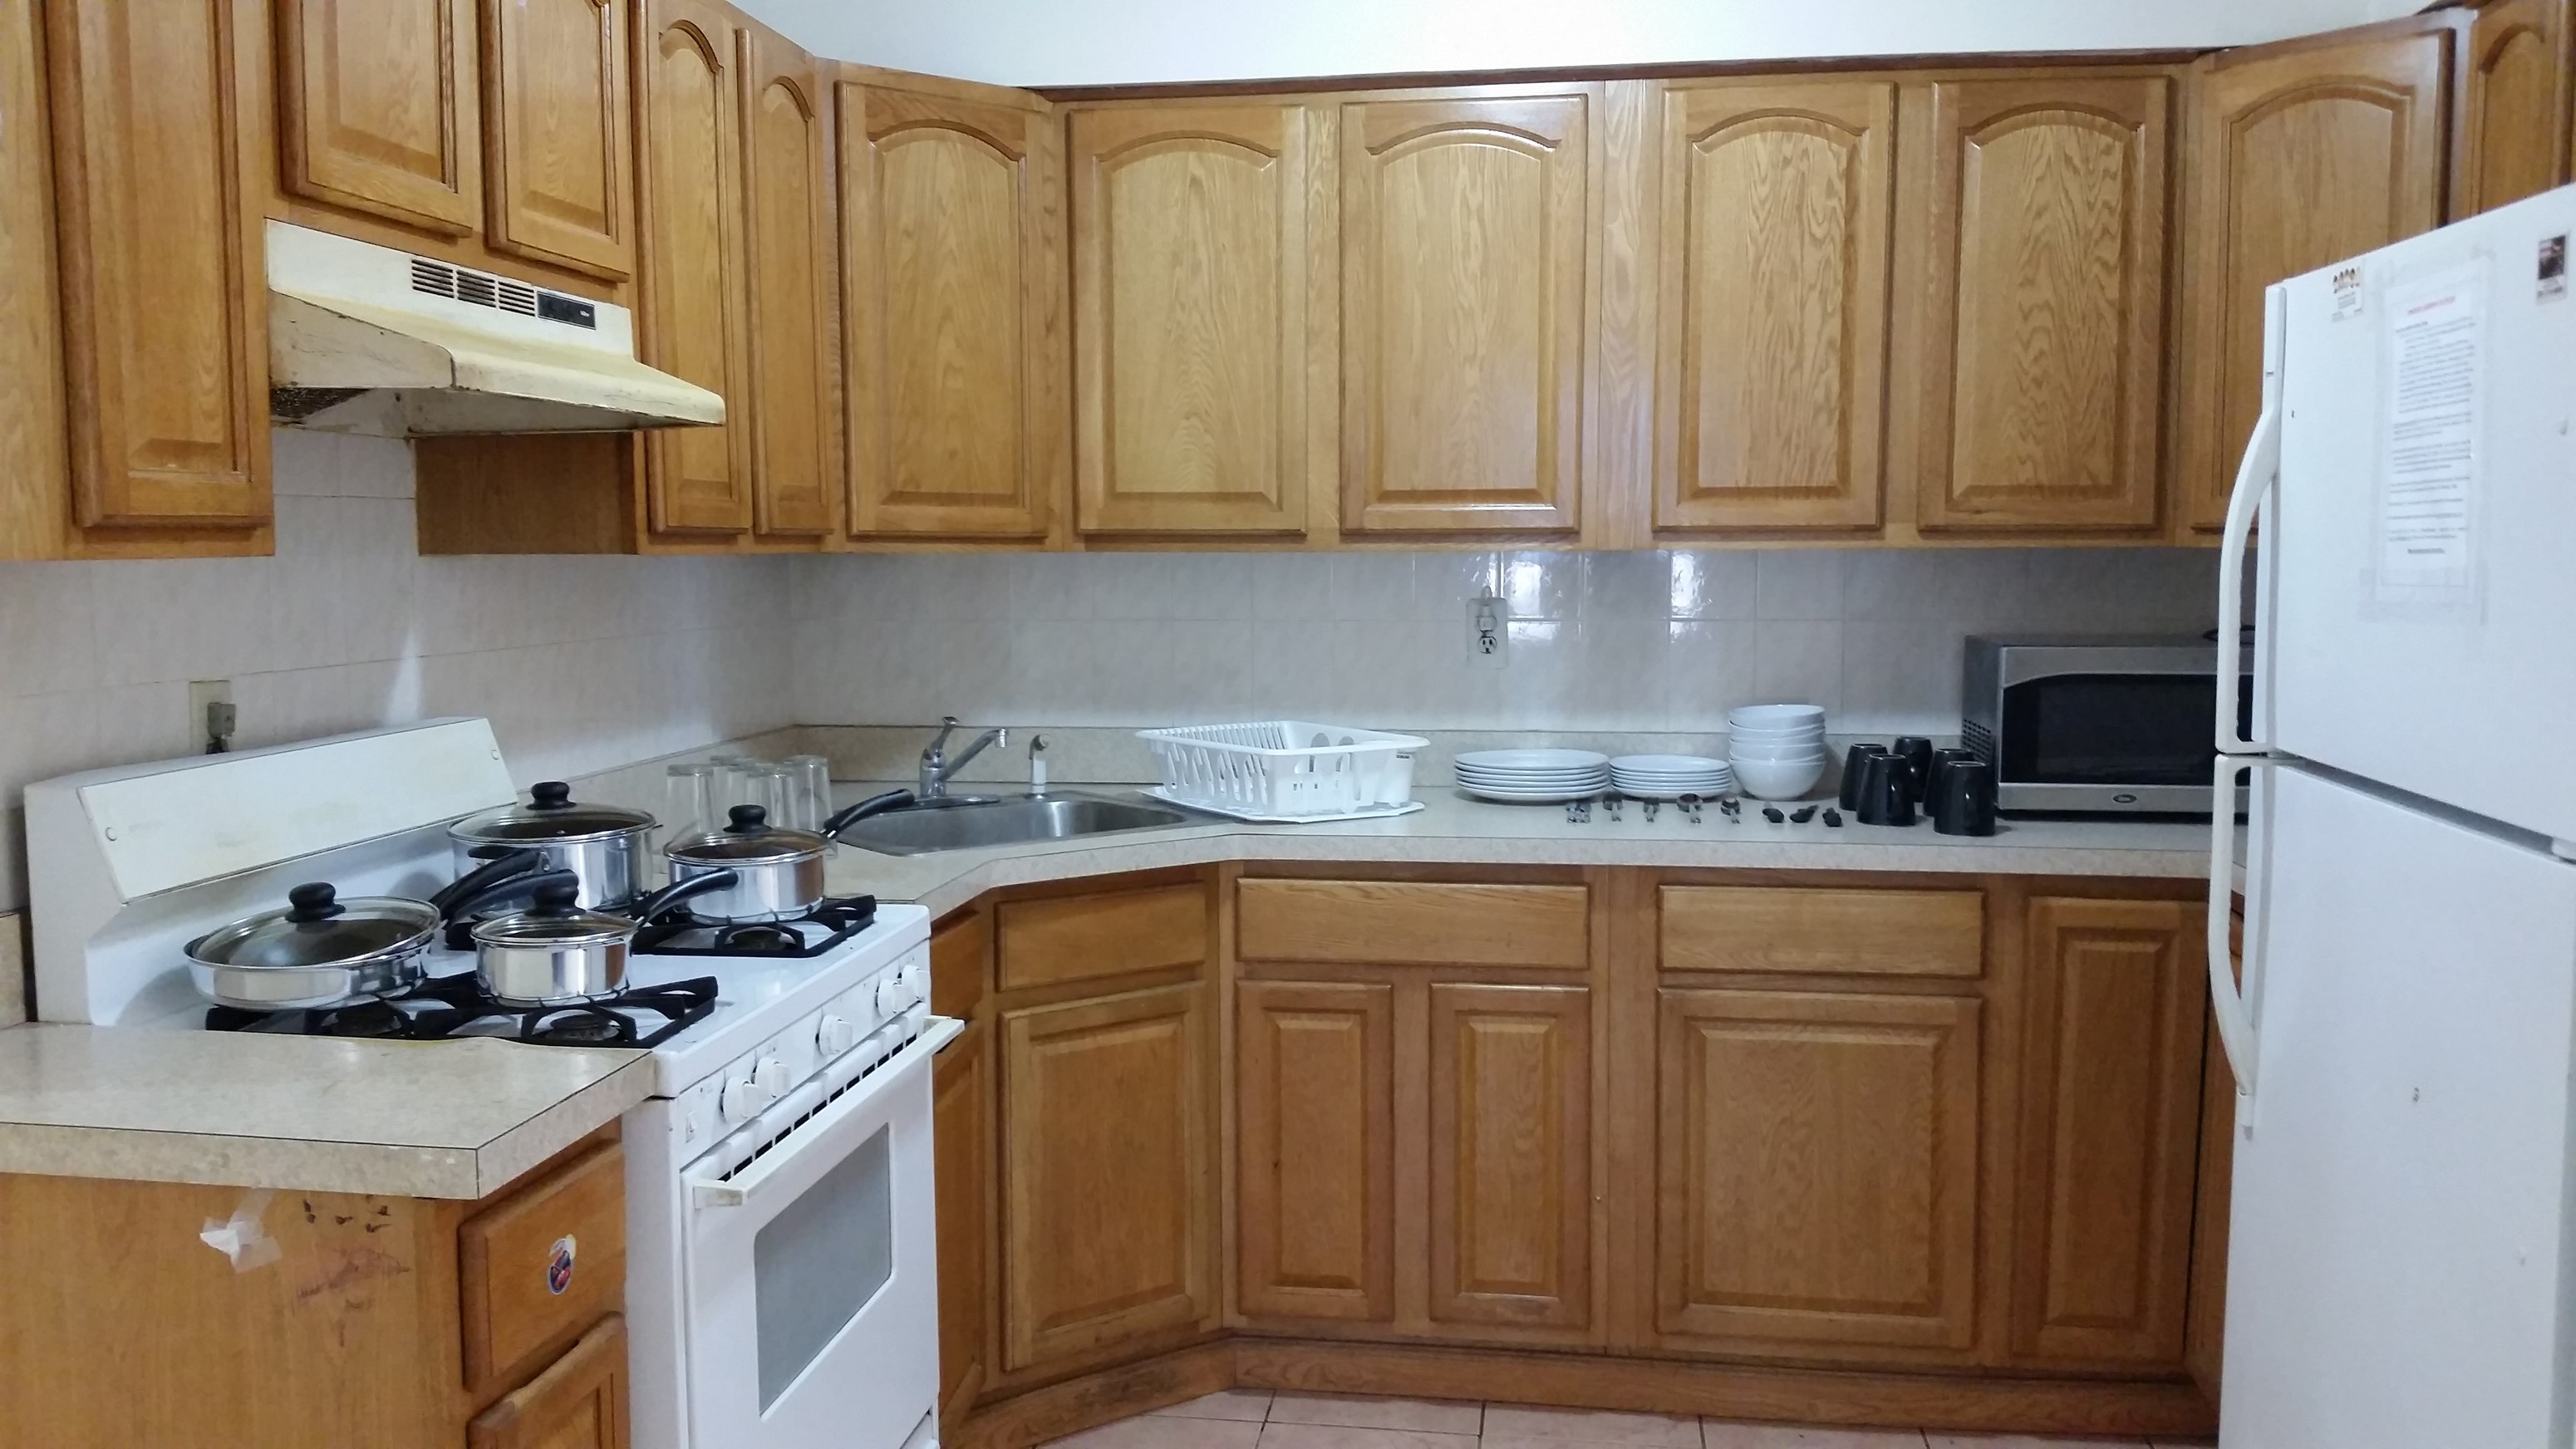 Fully Furnished Rooms For Rent in Jersey City NJ | 494623